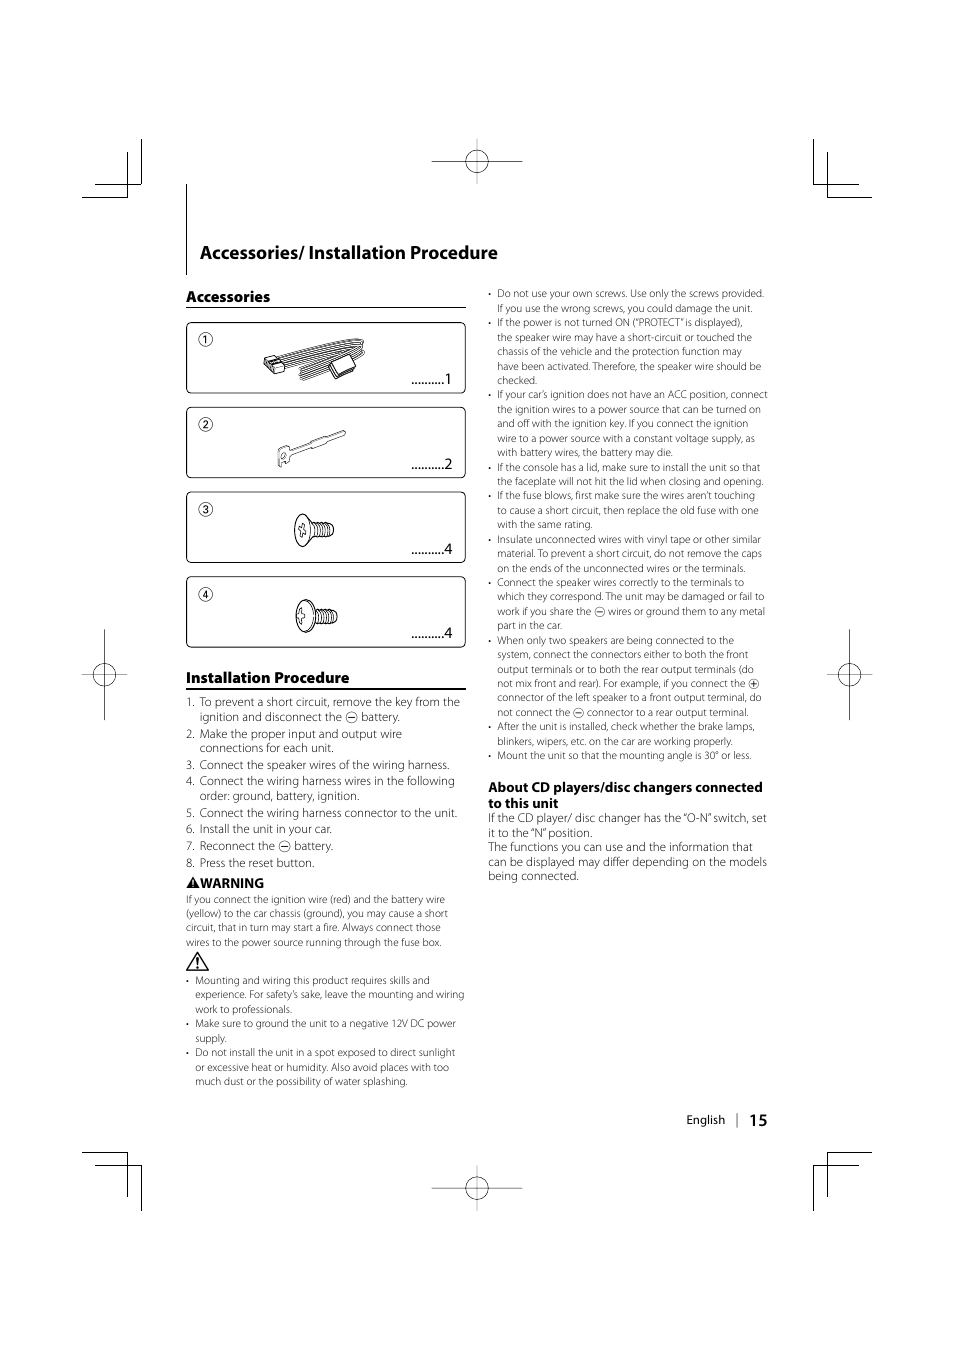 Accessories/ installation procedure | Kenwood KDC-MP142 User Manual | Page  15 / 56